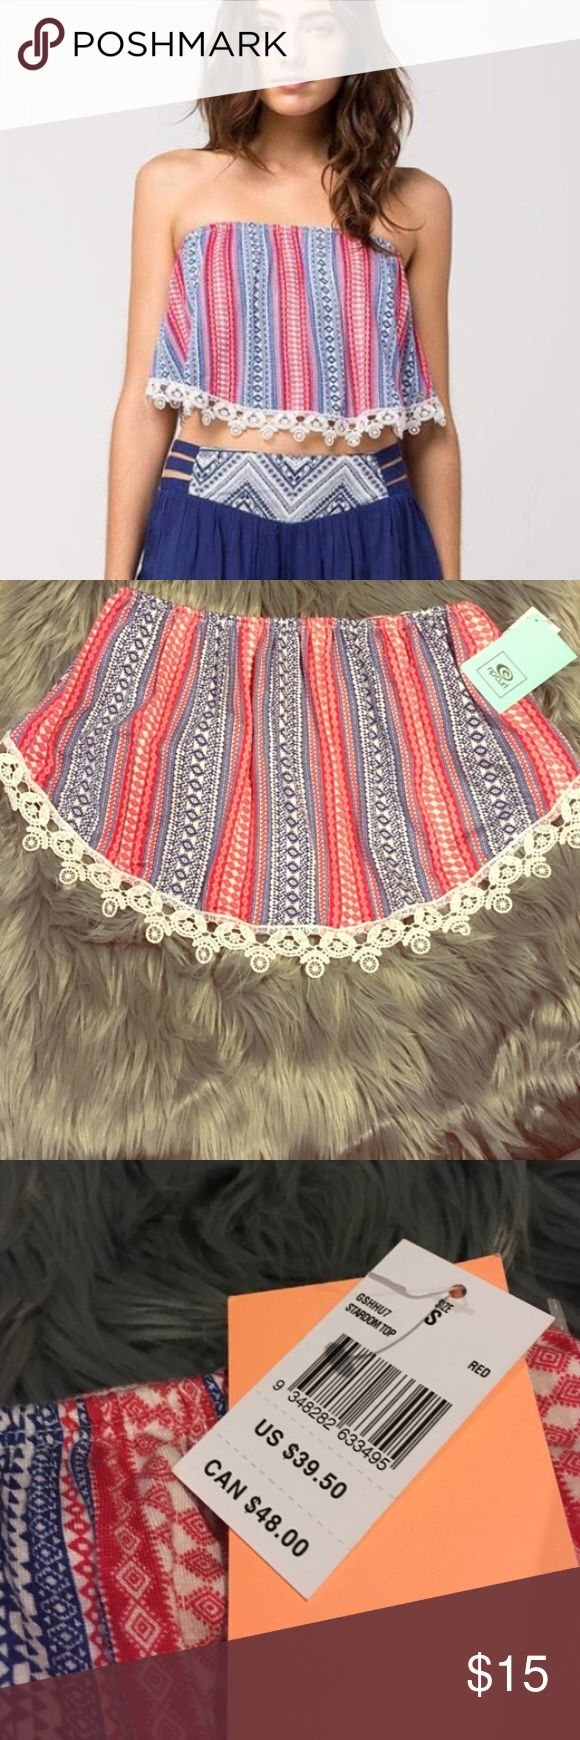 NWT RipCurl Bandeau ⭐️TOP RATED SELLER⭐️️NEXT DAY SHIPPINGPatriotic red, white and blue bandeau by RipCurl. Adorable white crochet lace at the bottom. Brand new! GREAT FOR THE BEACH  MSRP $40. Rip Curl Intimates & Sleepwear Bandeaus